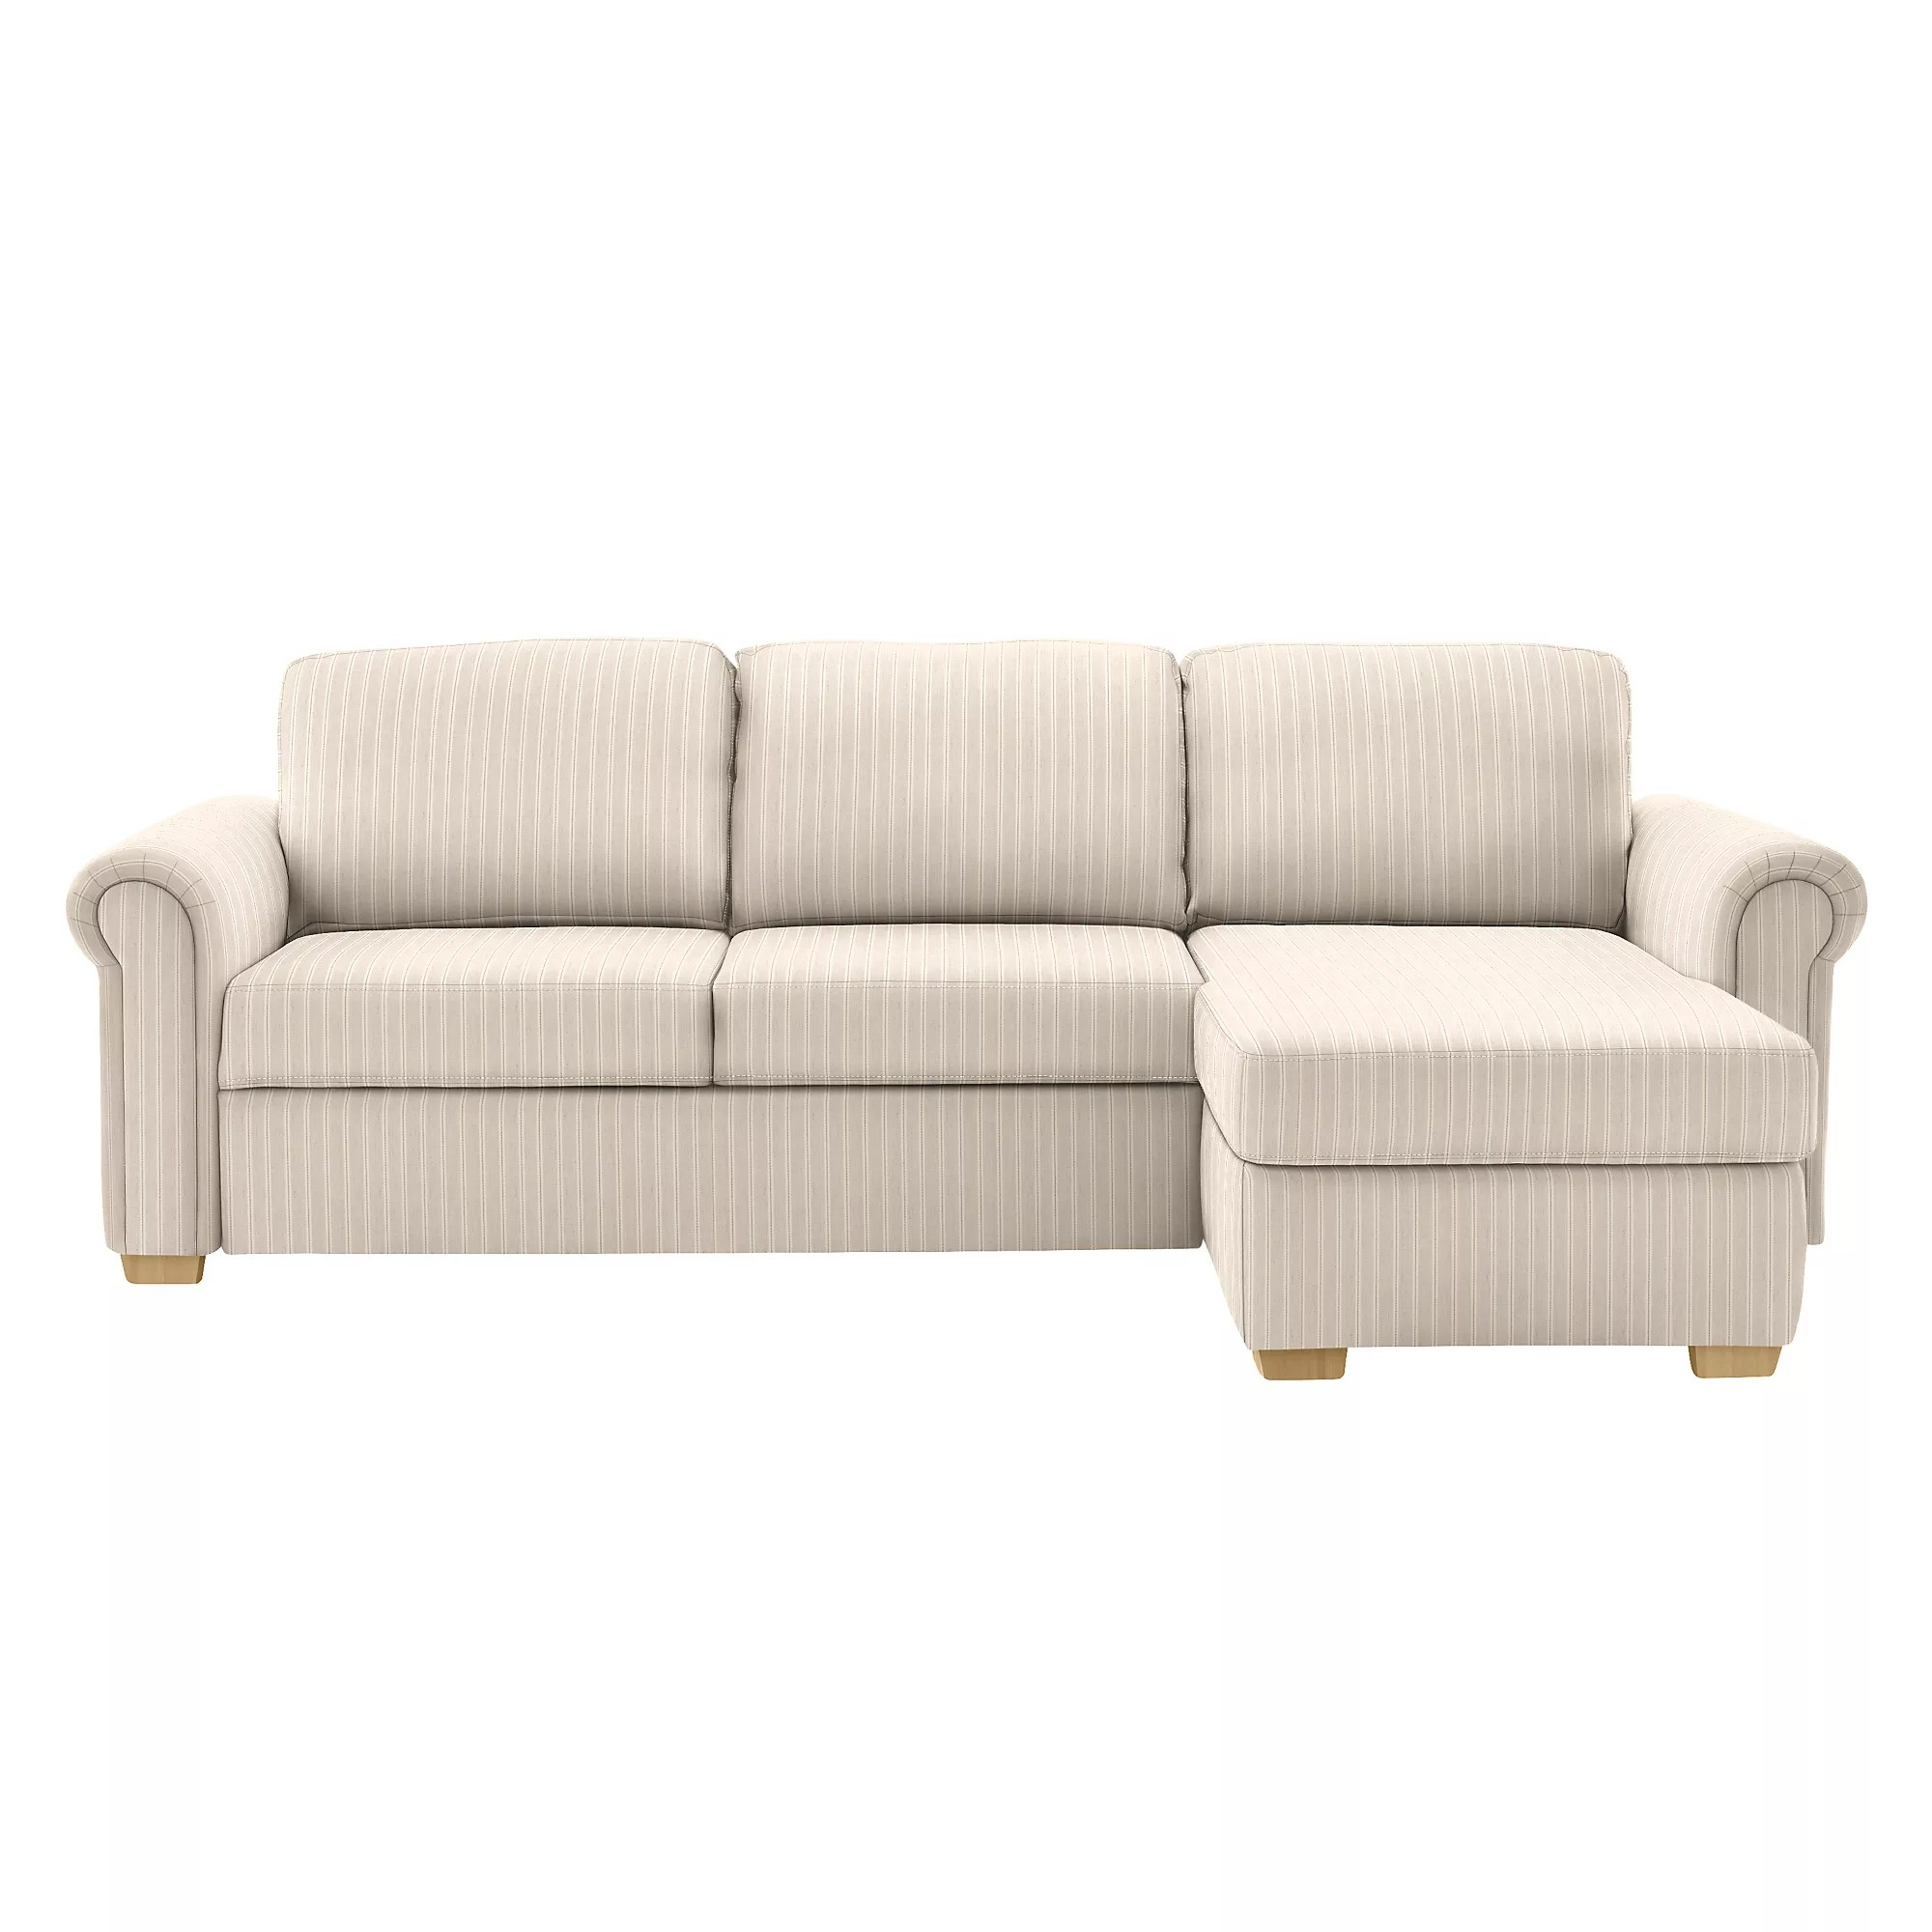 Big Sofa Berlin John Lewis Sacha Large Scroll Arm Storage Sofa Bed At John